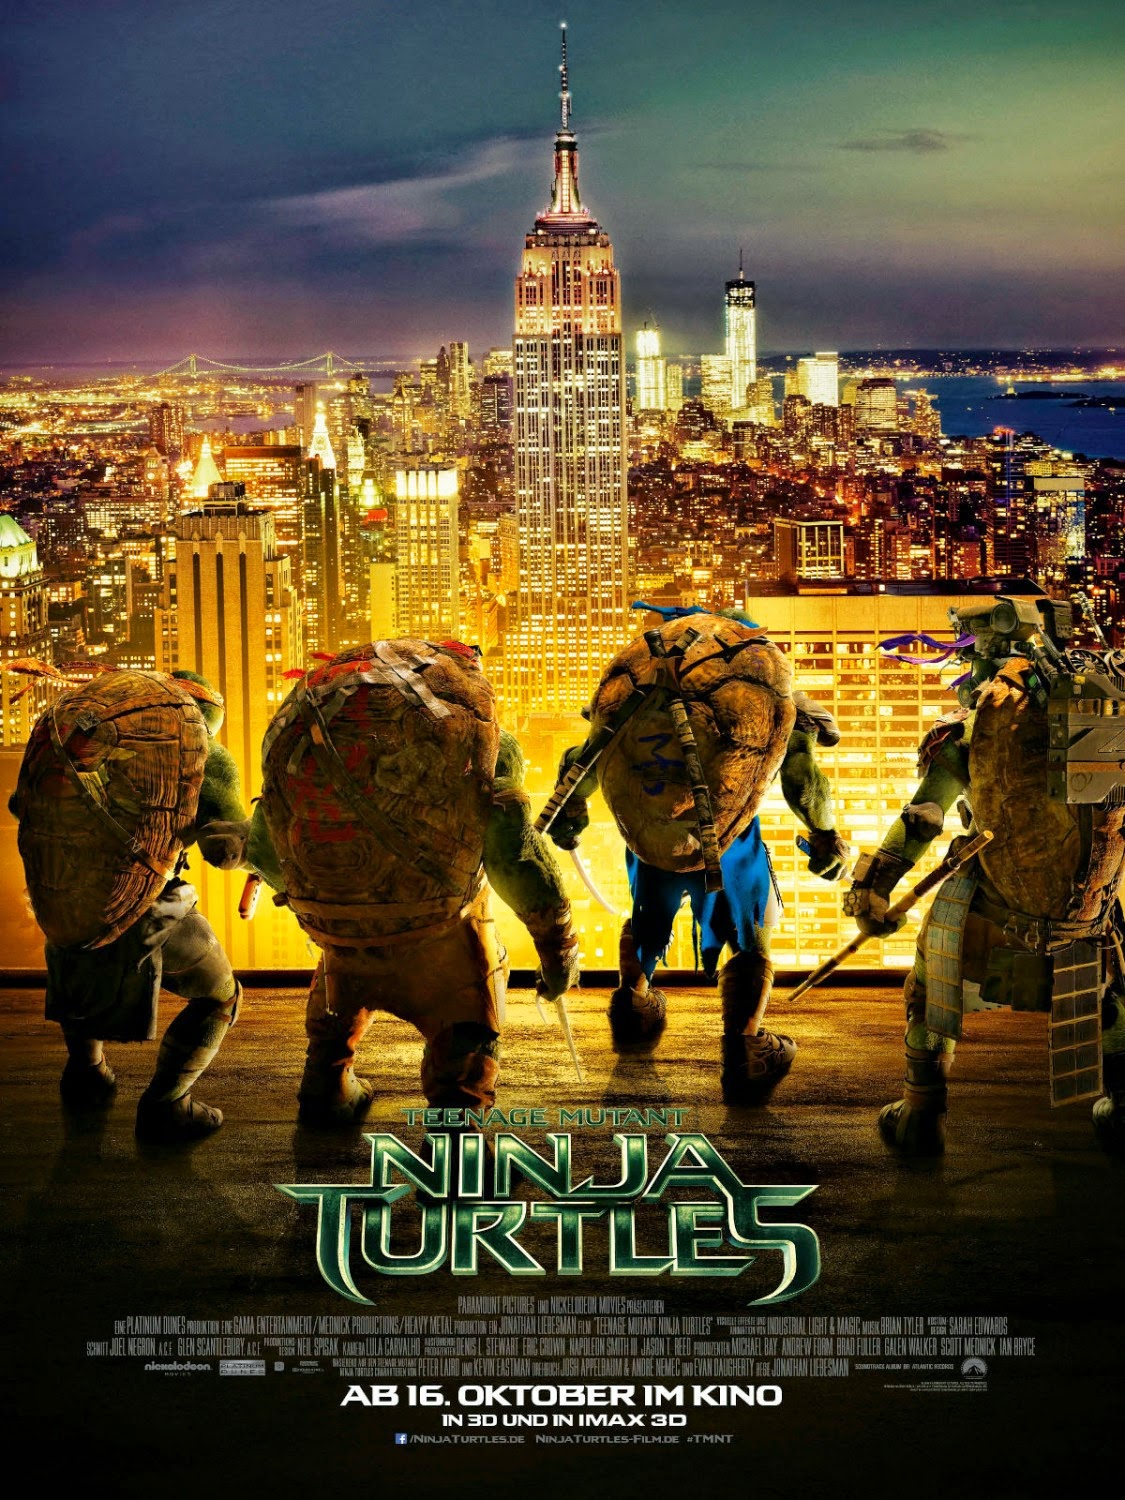 New 'Teenage Mutant Ninja Turtles' International Poster ...